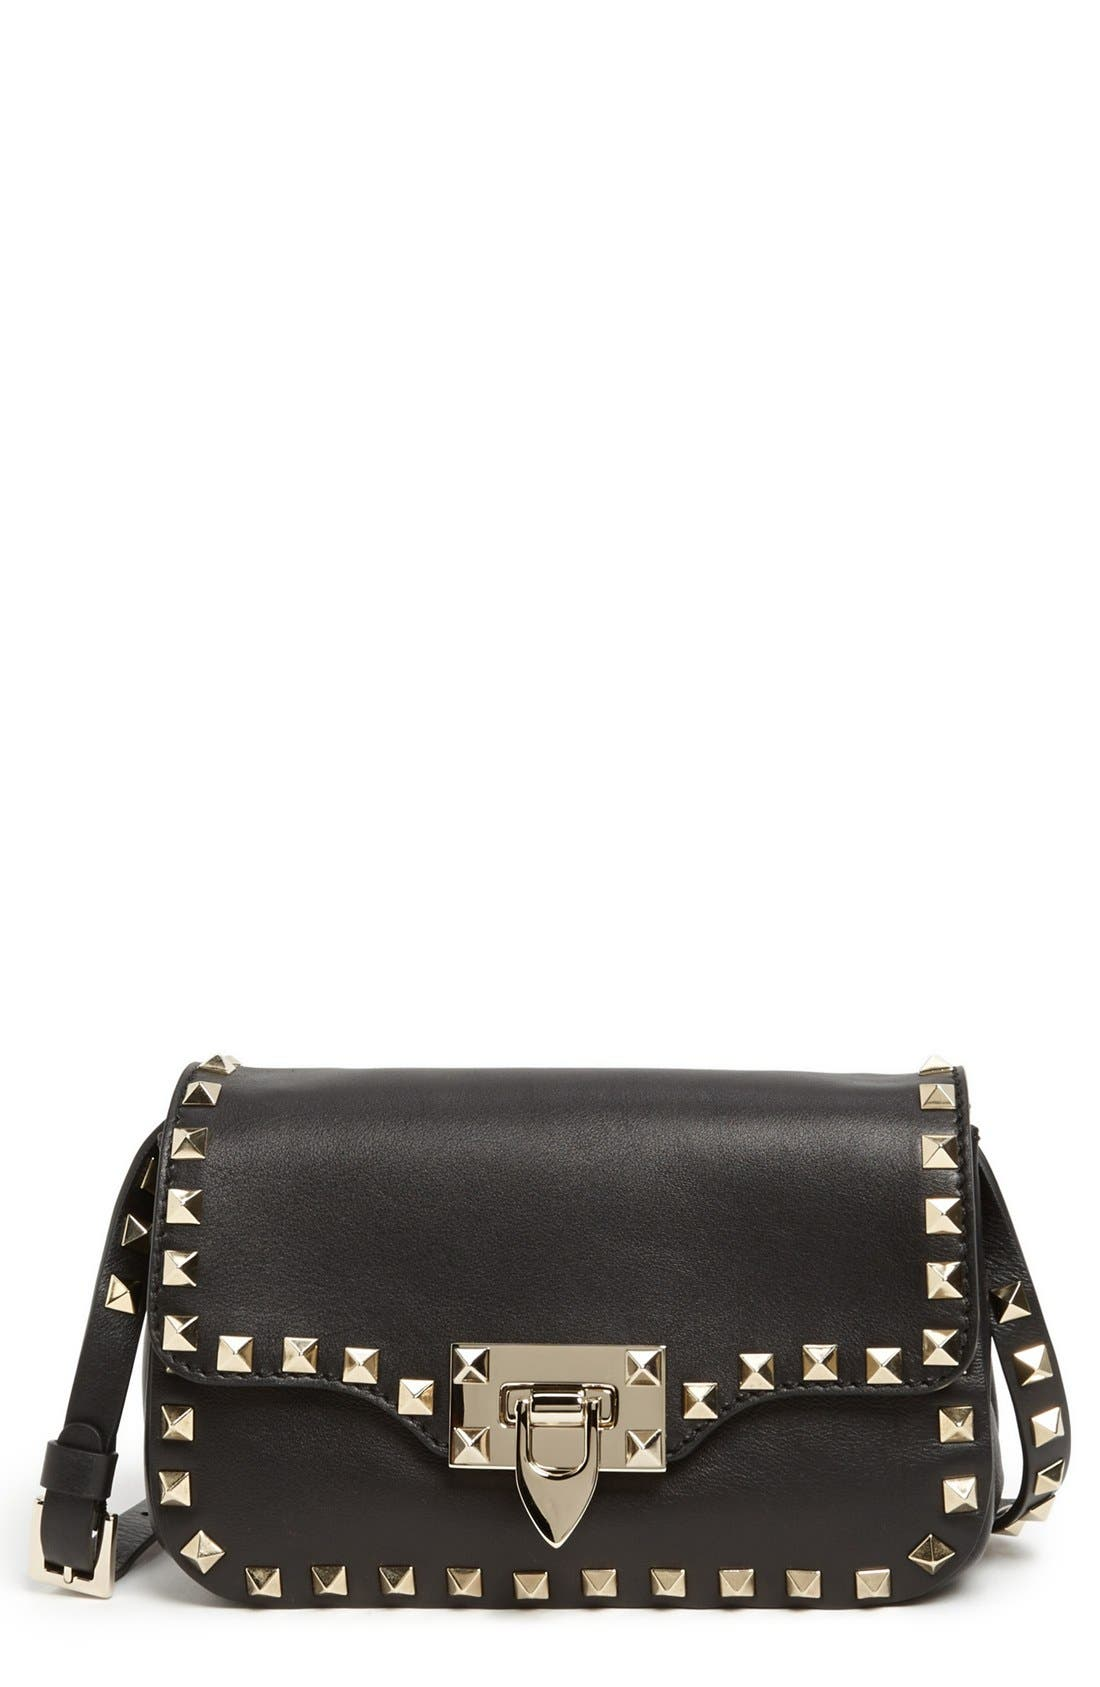 Alternate Image 1 Selected - Valentino 'Small Rockstud' Flap Bag